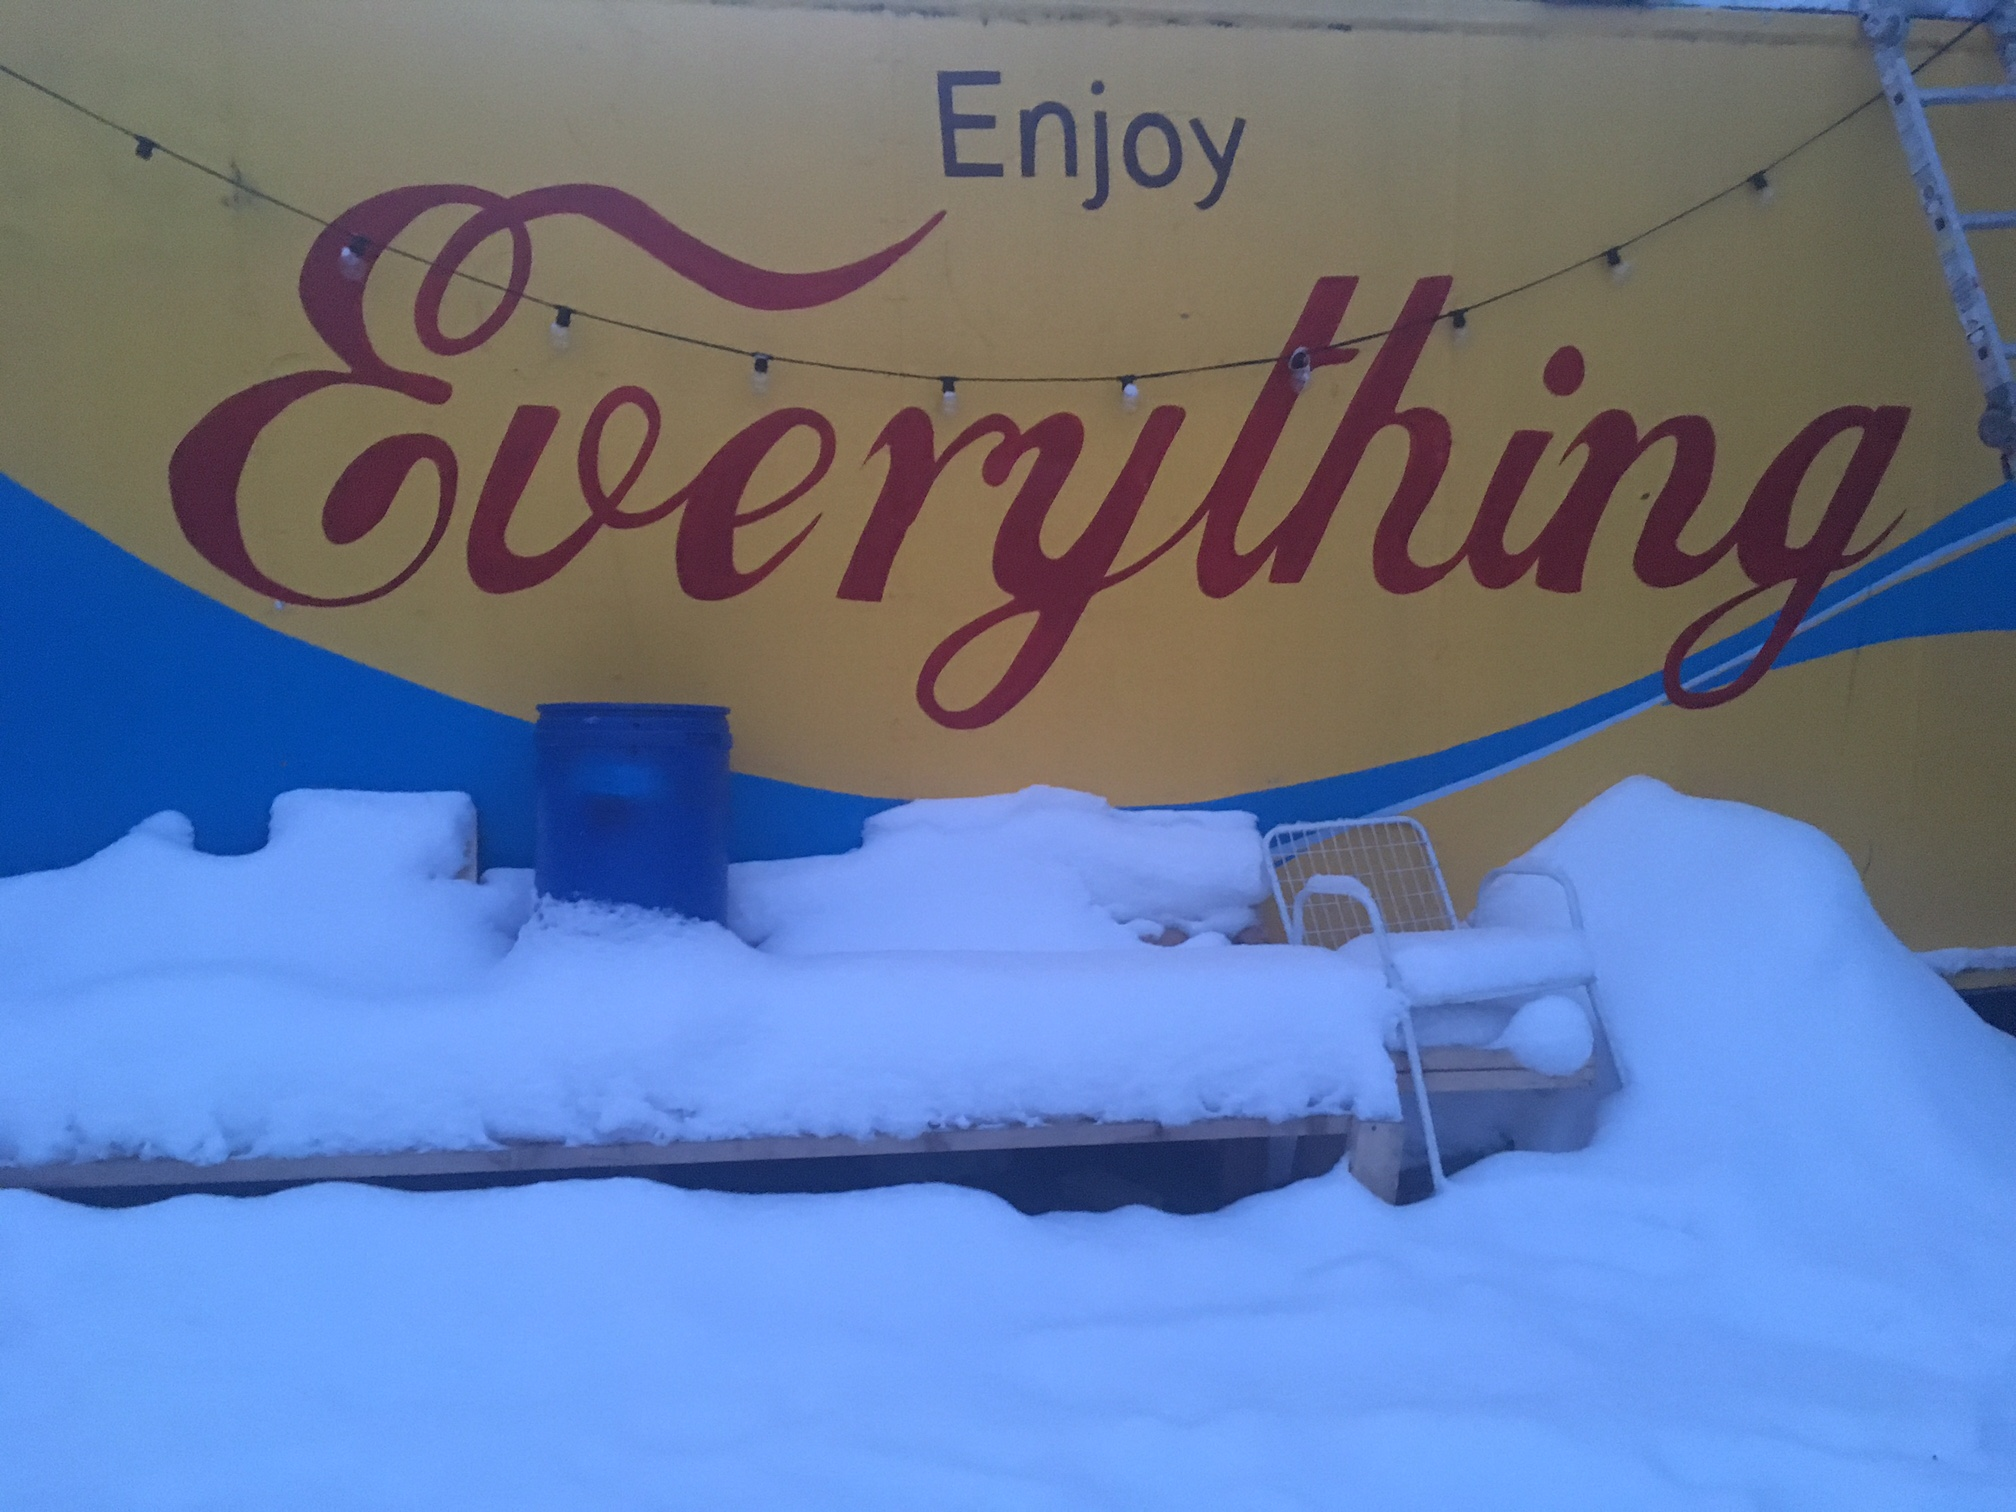 ENJOY EVERYTHING - NOT FOR SALE